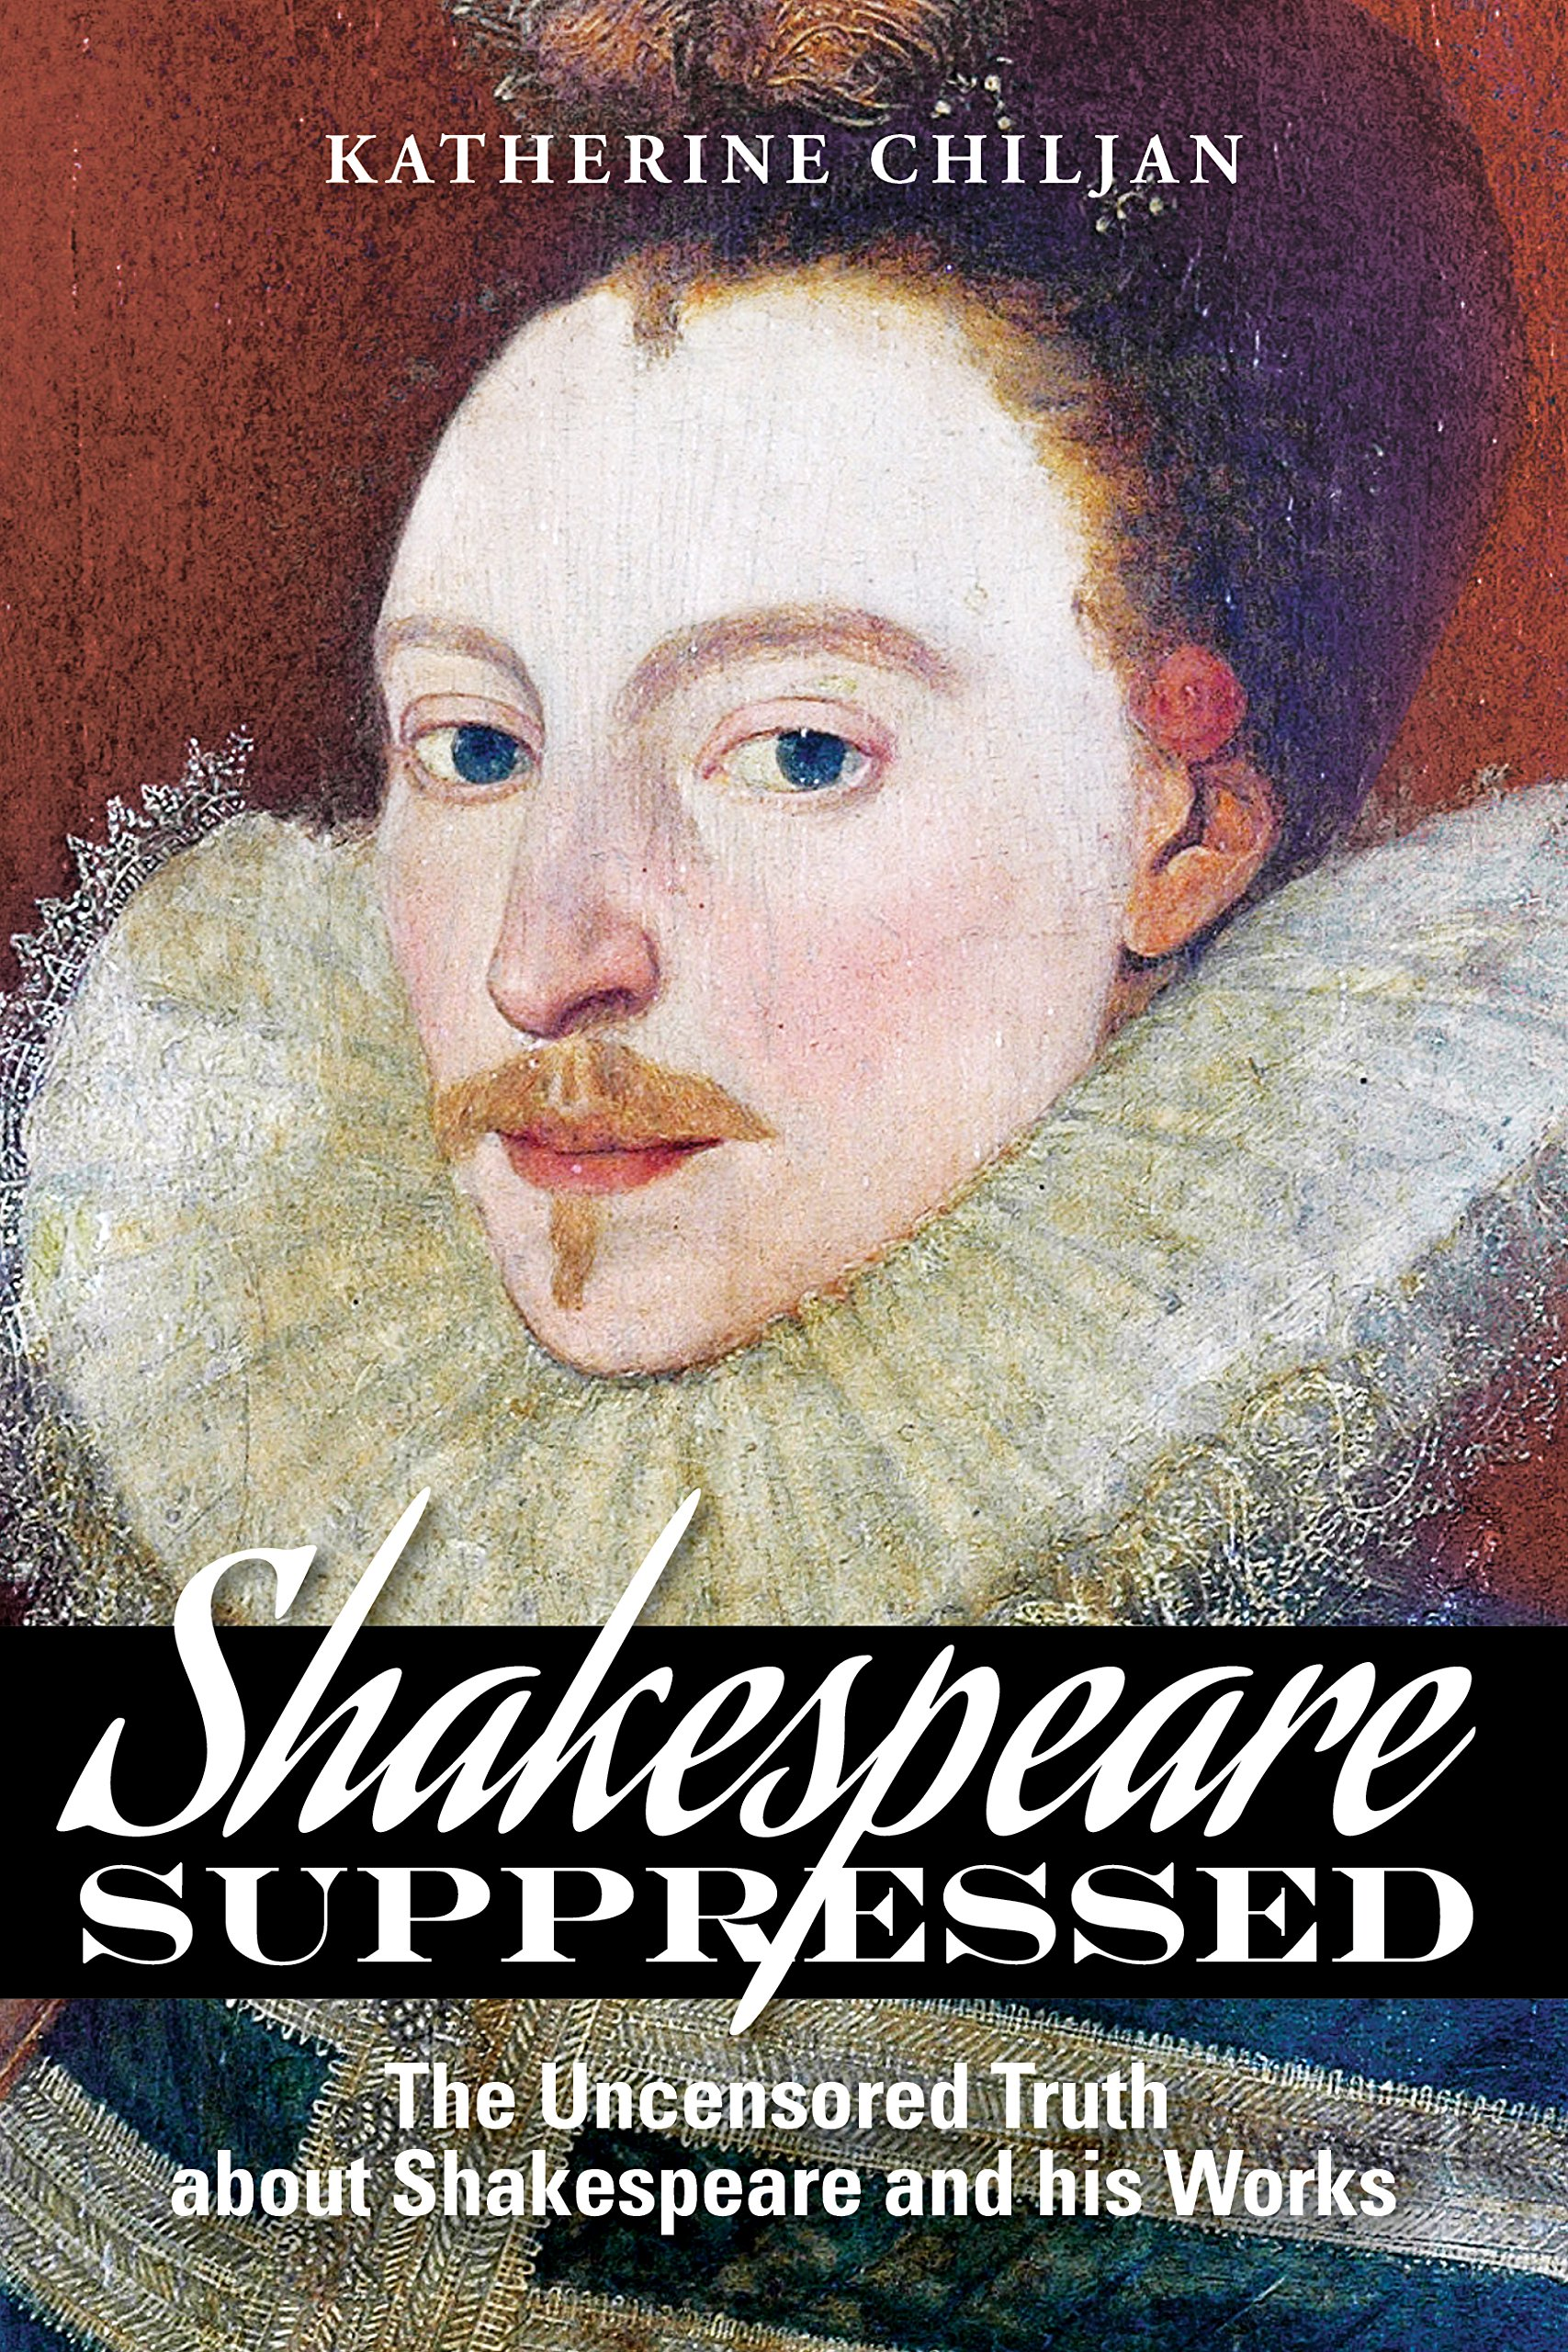 Download Shakespeare Suppressed: the Uncensored Truth about Shakespeare and his Works - 2nd edition (2016) pdf epub